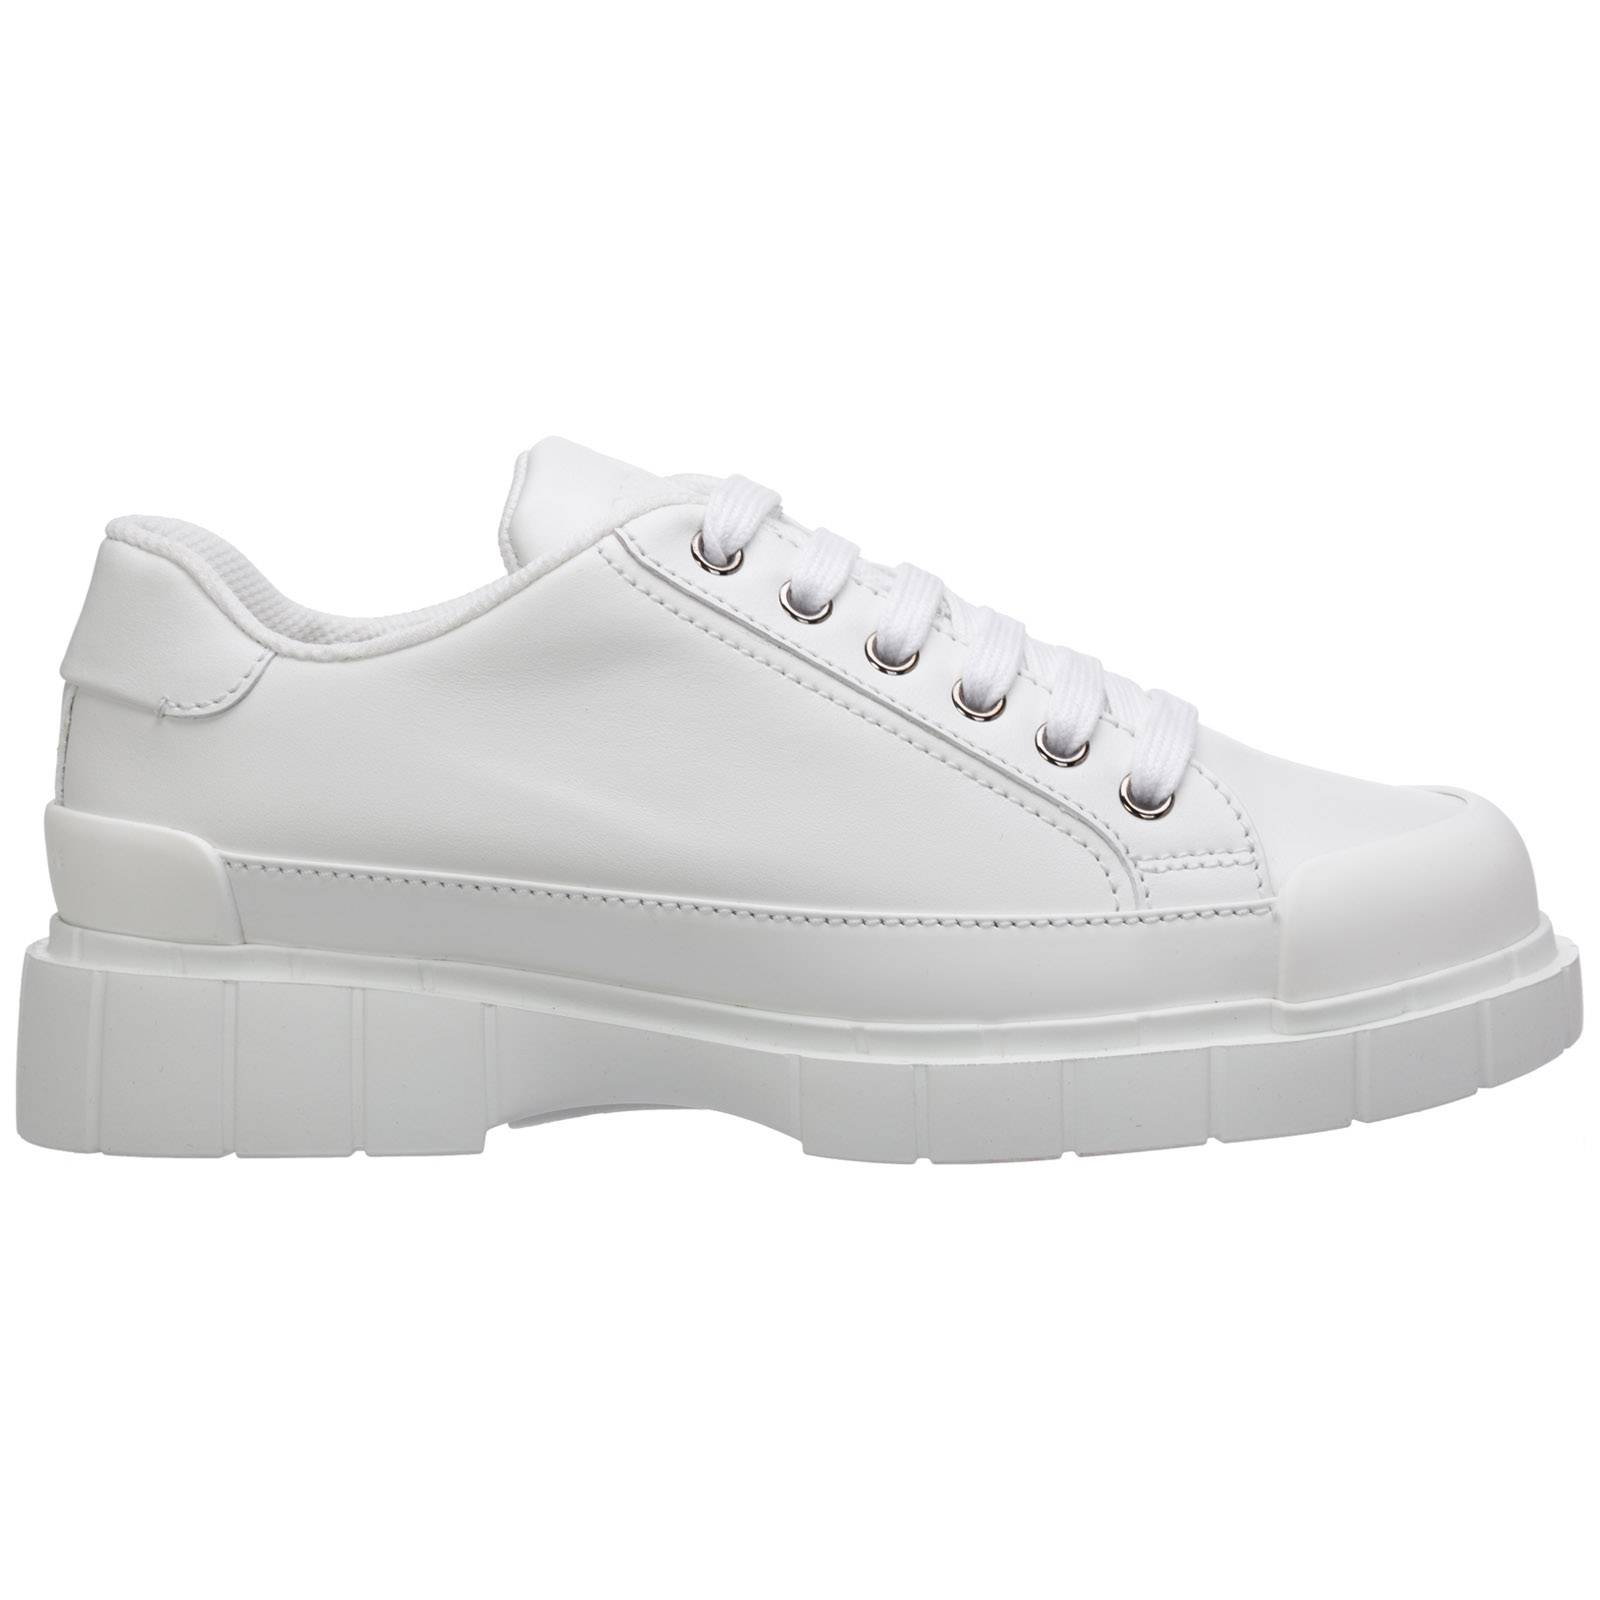 Car Shoe Women's shoes leather trainers sneakers  - White - Size: 39